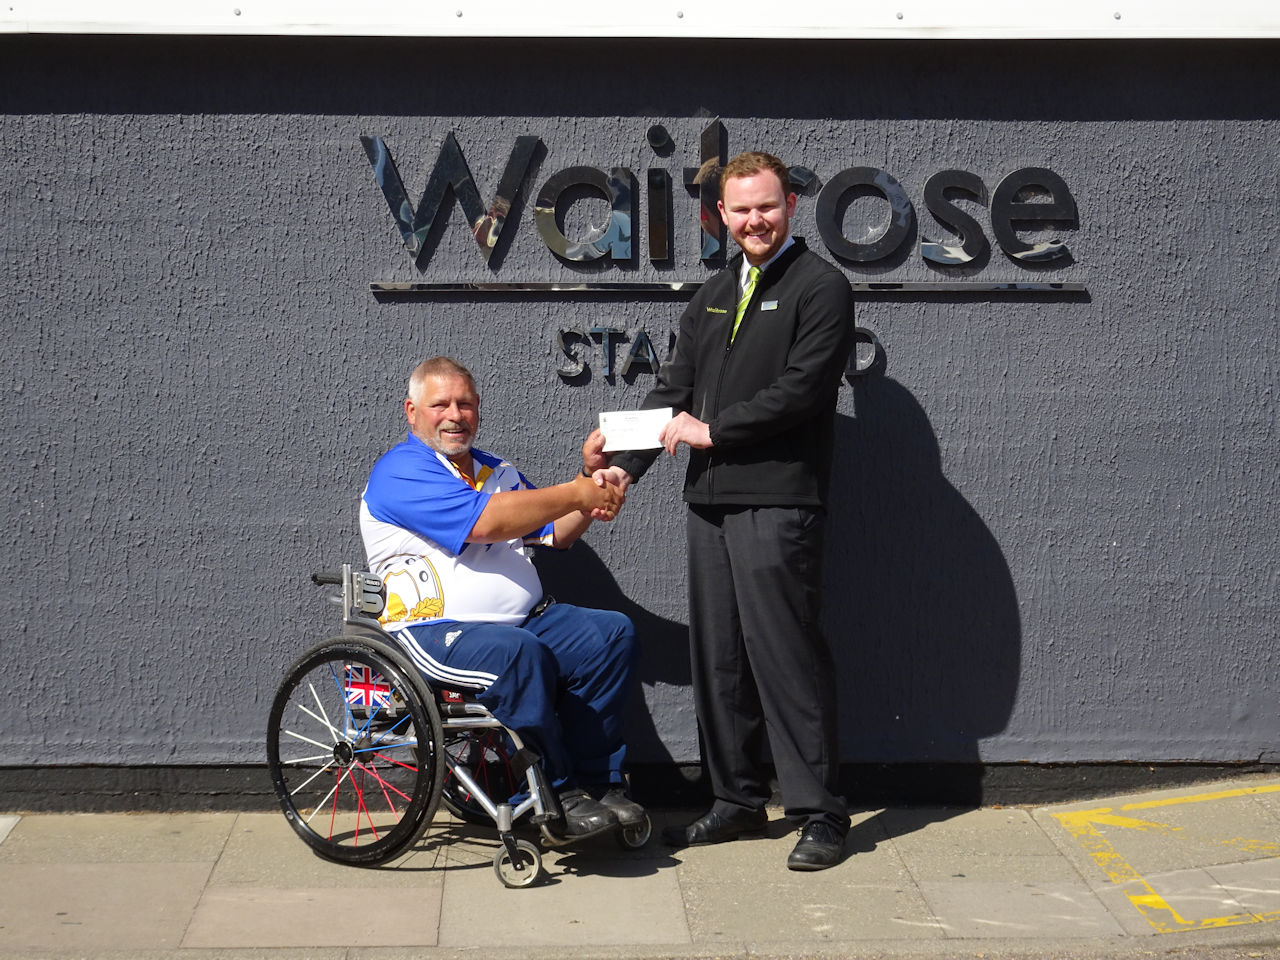 Waitrose cheque